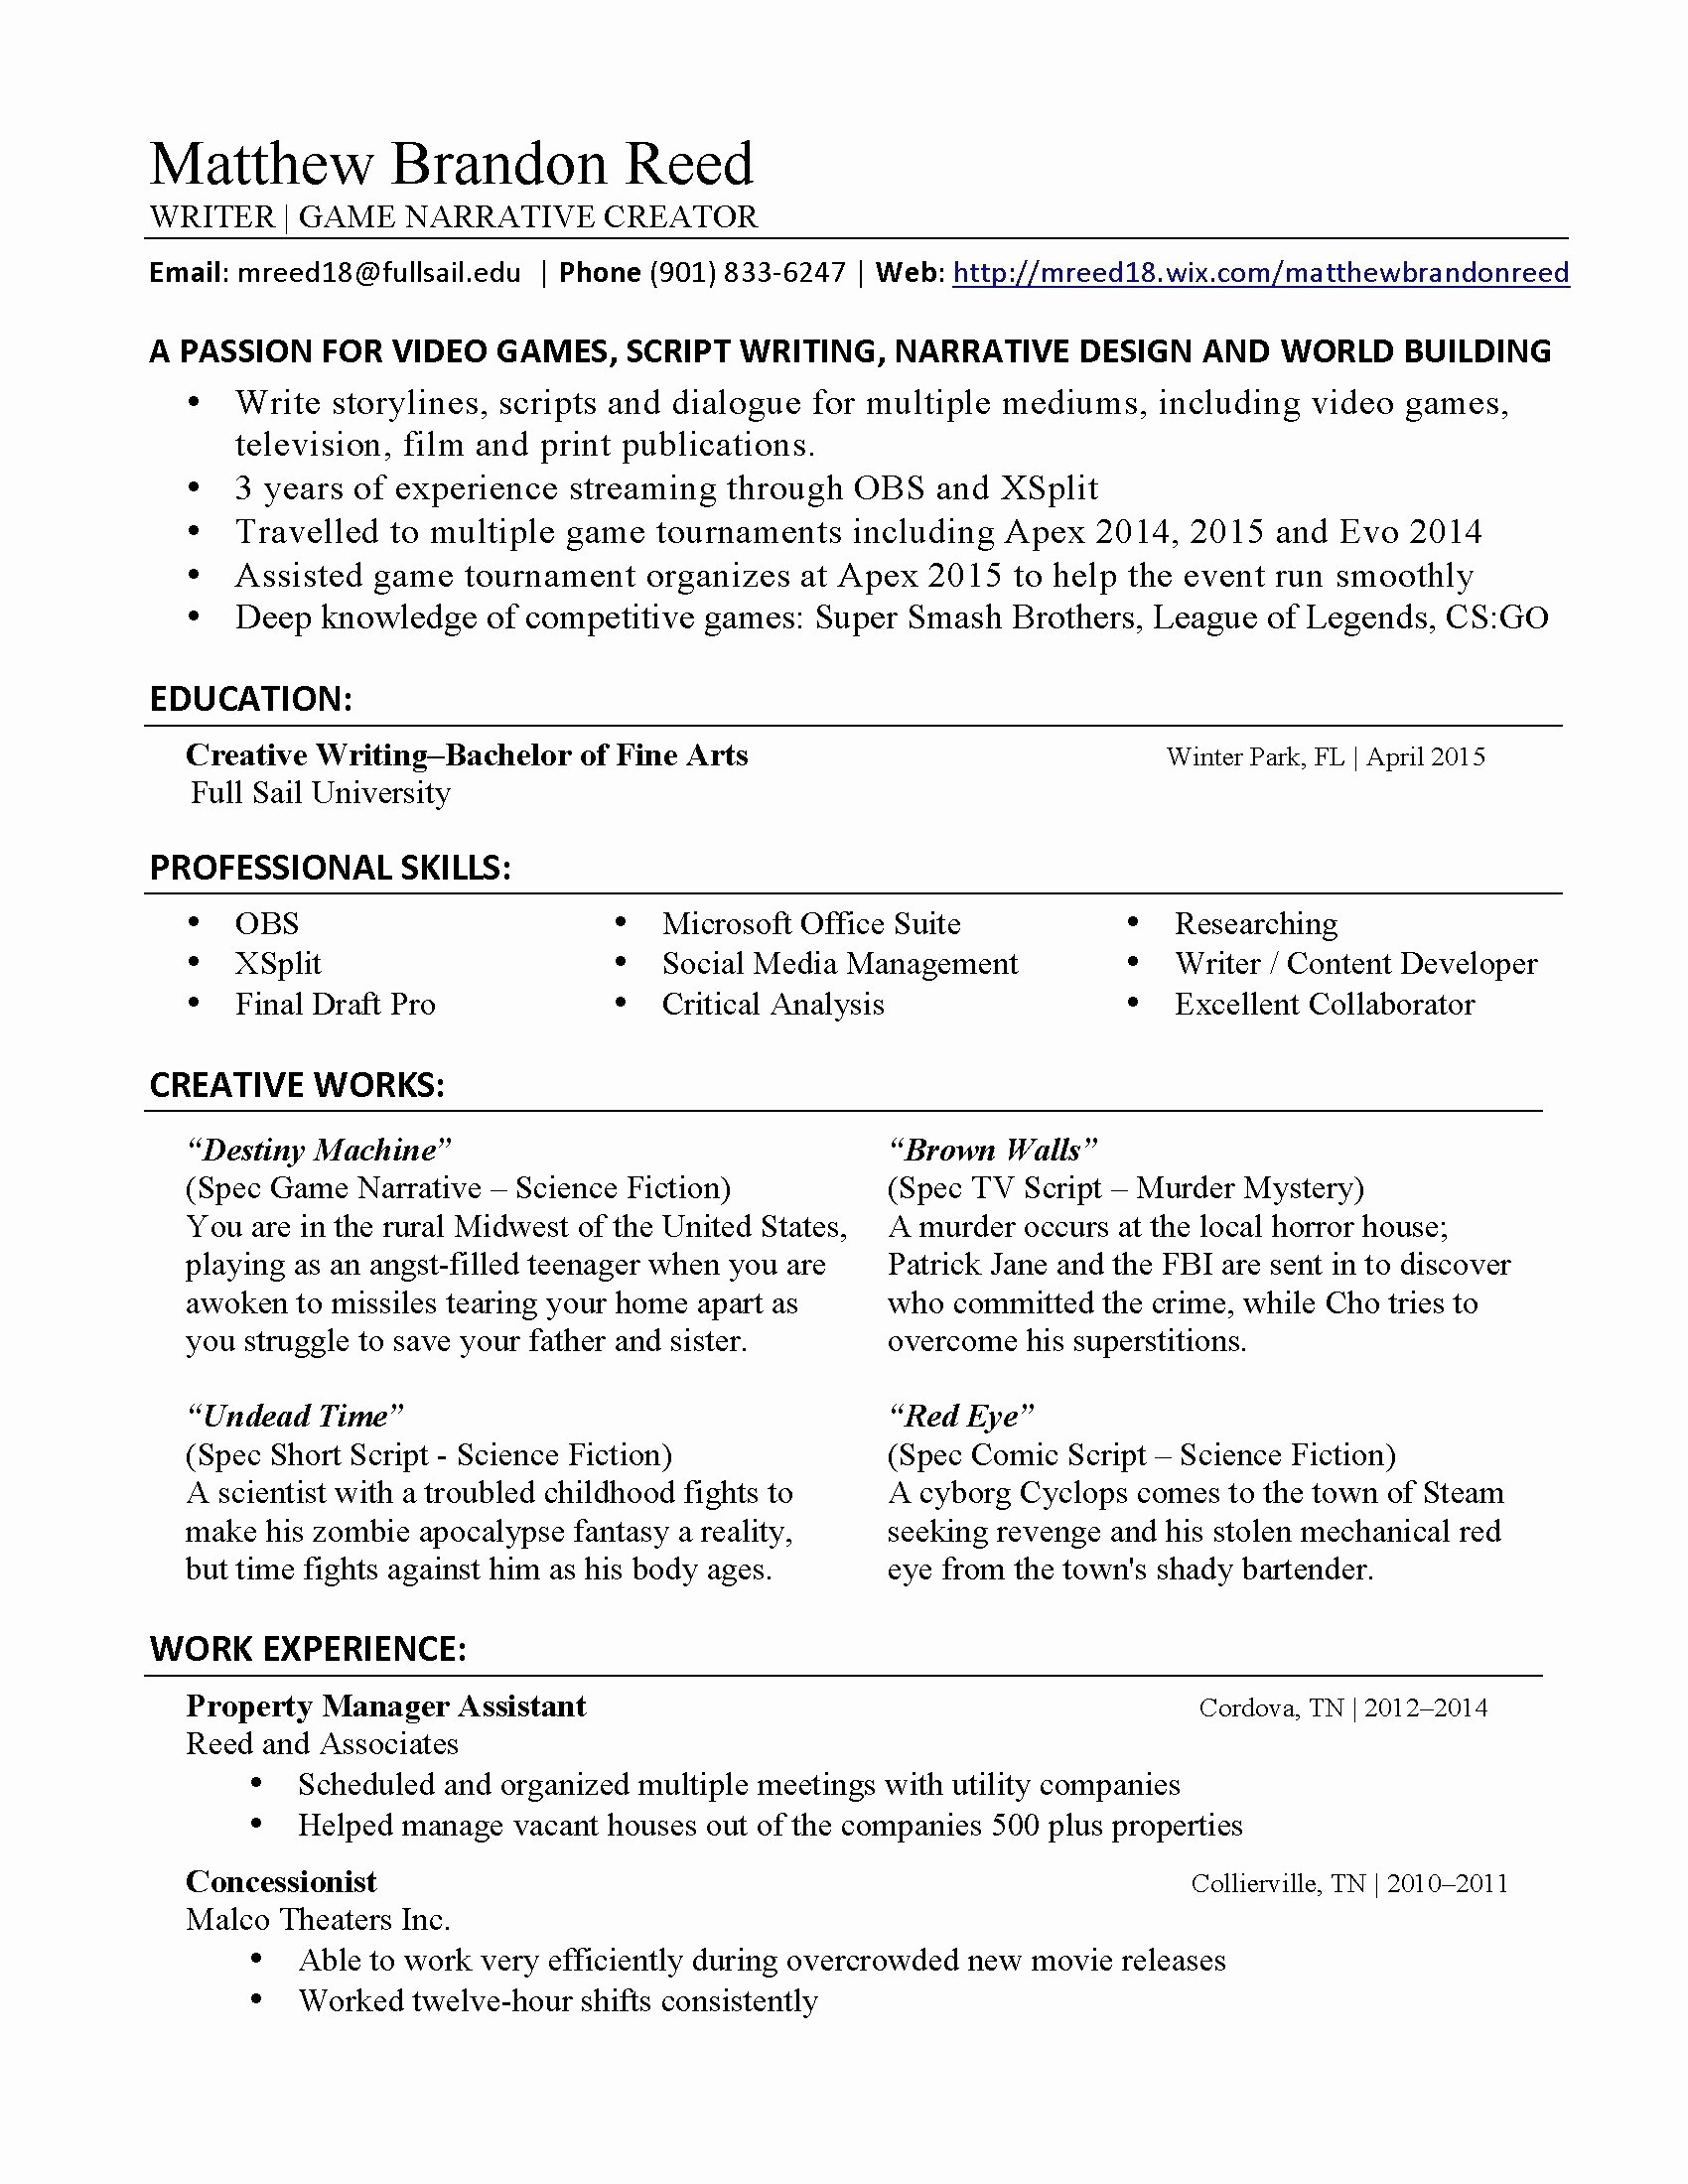 Fbi Resume - Professional Basketball Player Resume Elegant Basketball Resume